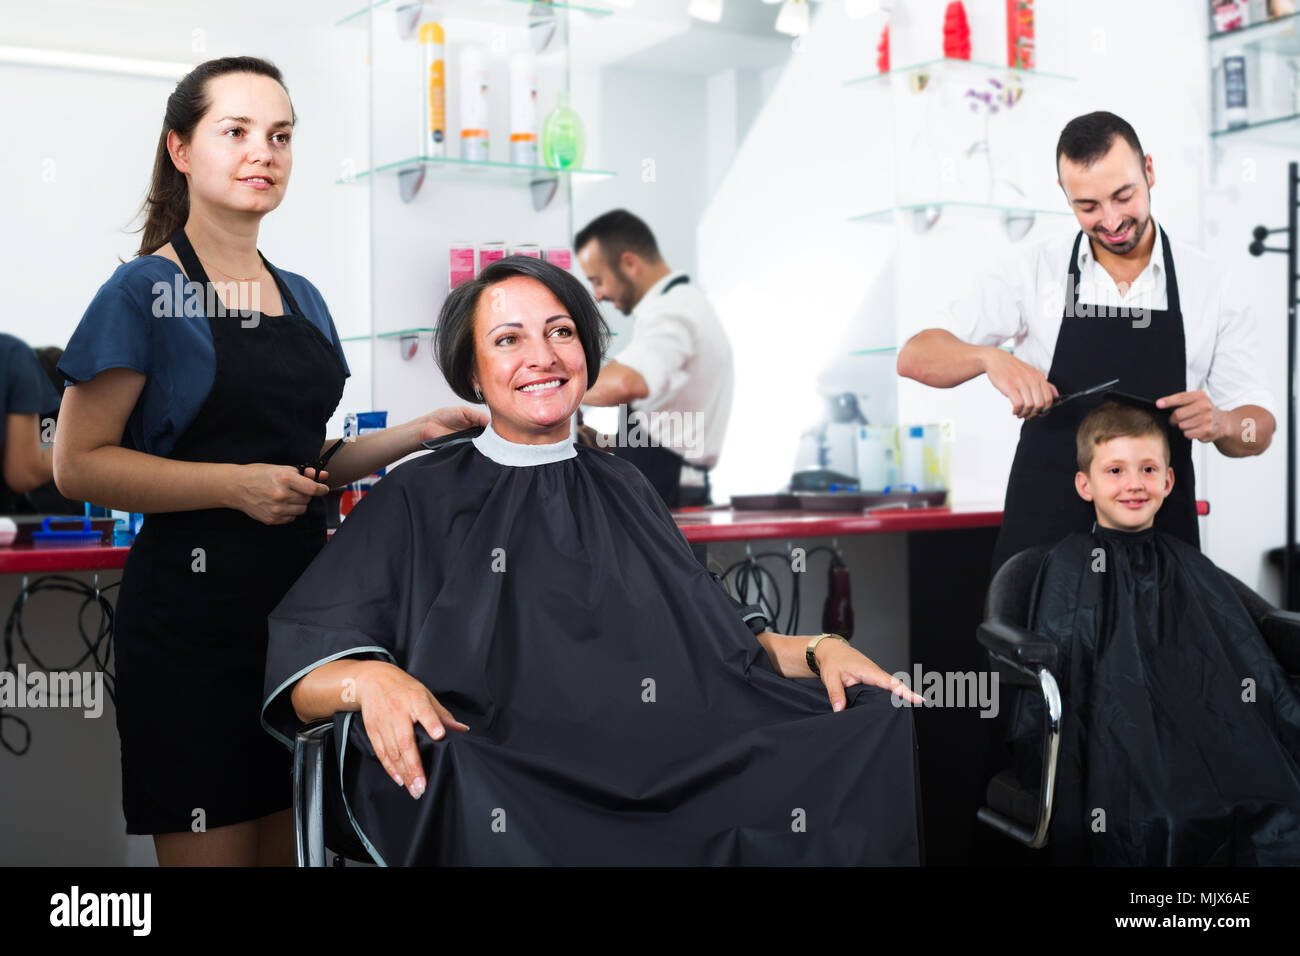 Smiling Woman 40s Getting Haircut By Female Hairdresser In Salon